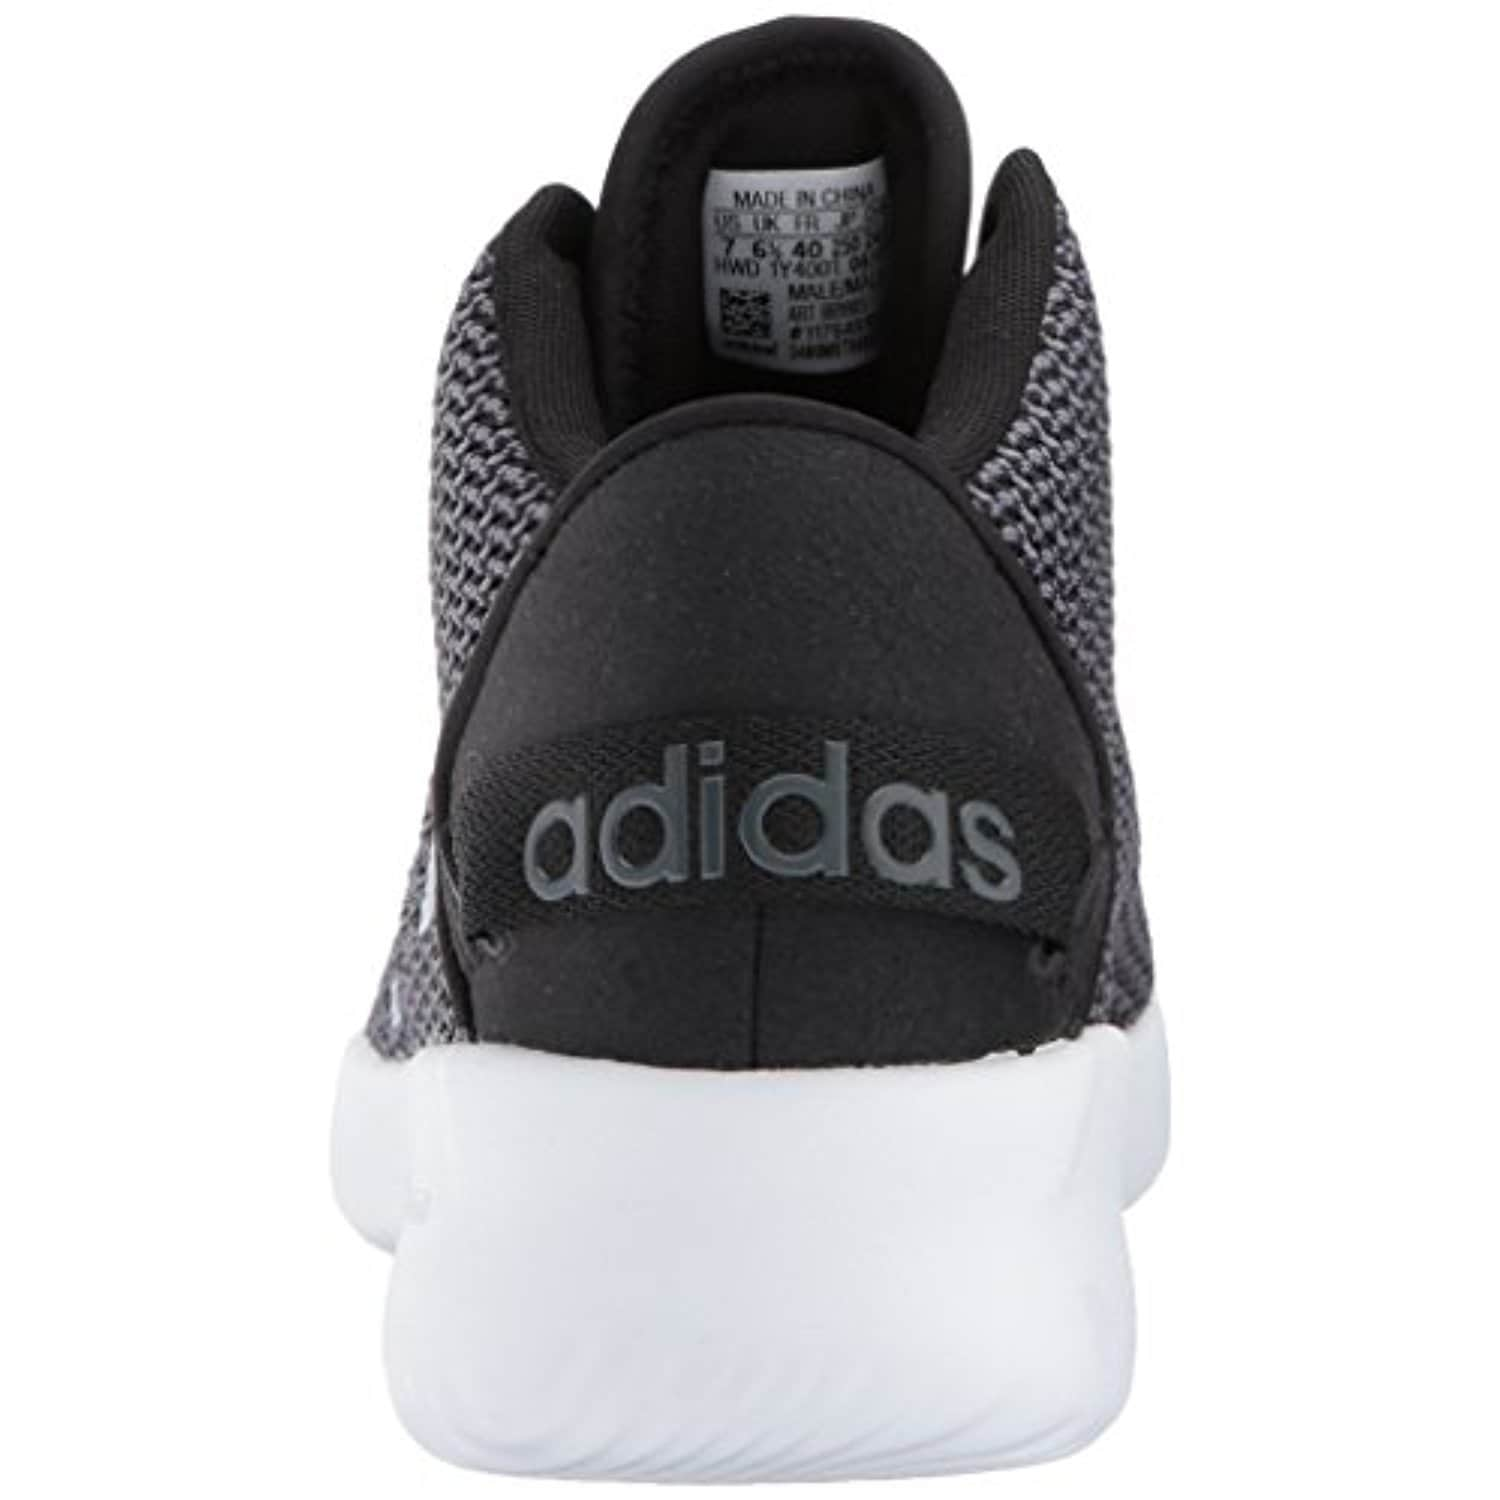 c305d027bd83 Shop adidas NEO Men s CF Refresh Mid Basketball Shoe - black white grey  five - Free Shipping Today - Overstock - 18275644